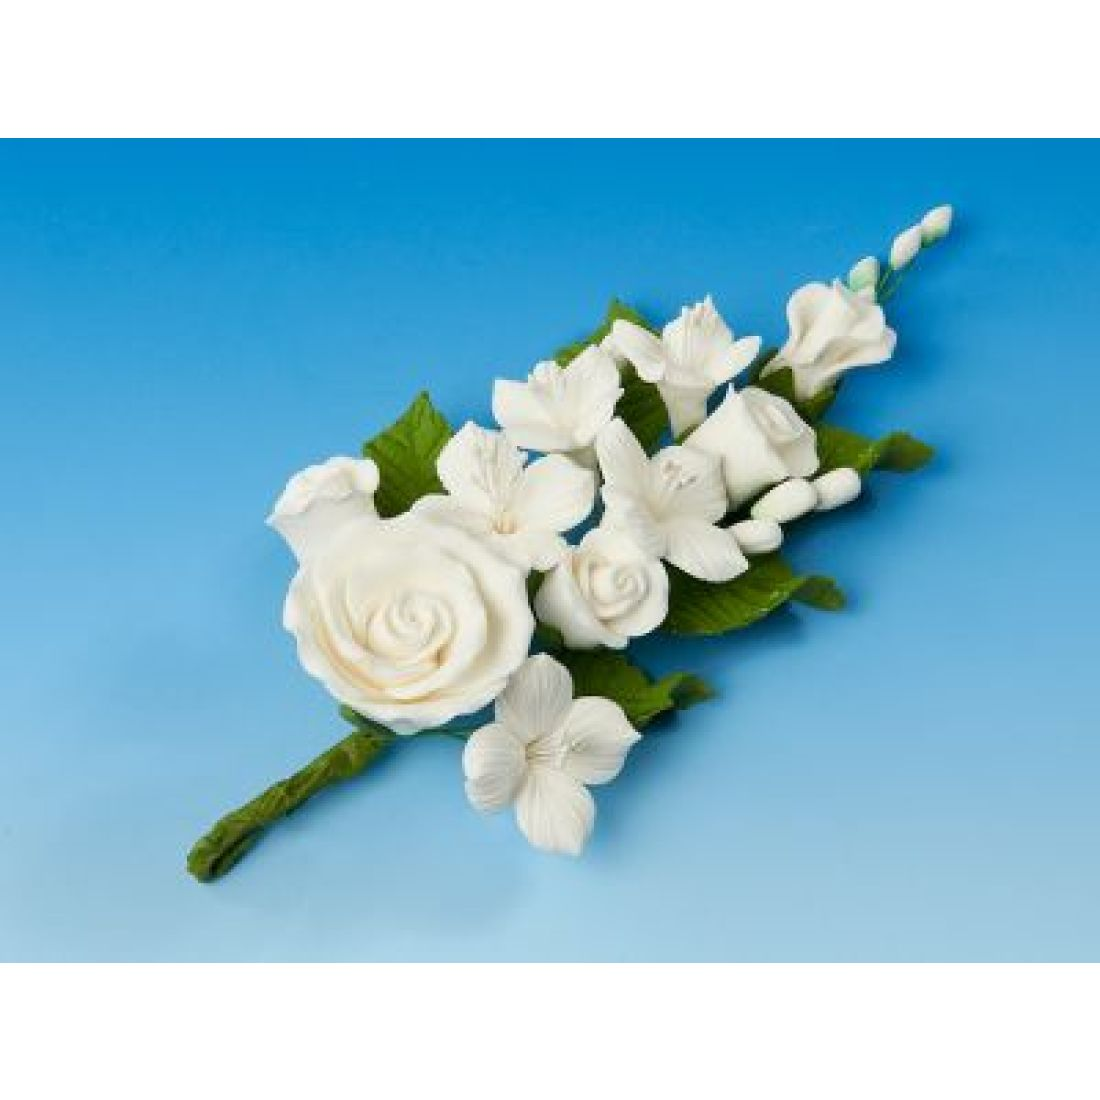 Small White Rose Dogwood Spray Squires Kitchen Shop